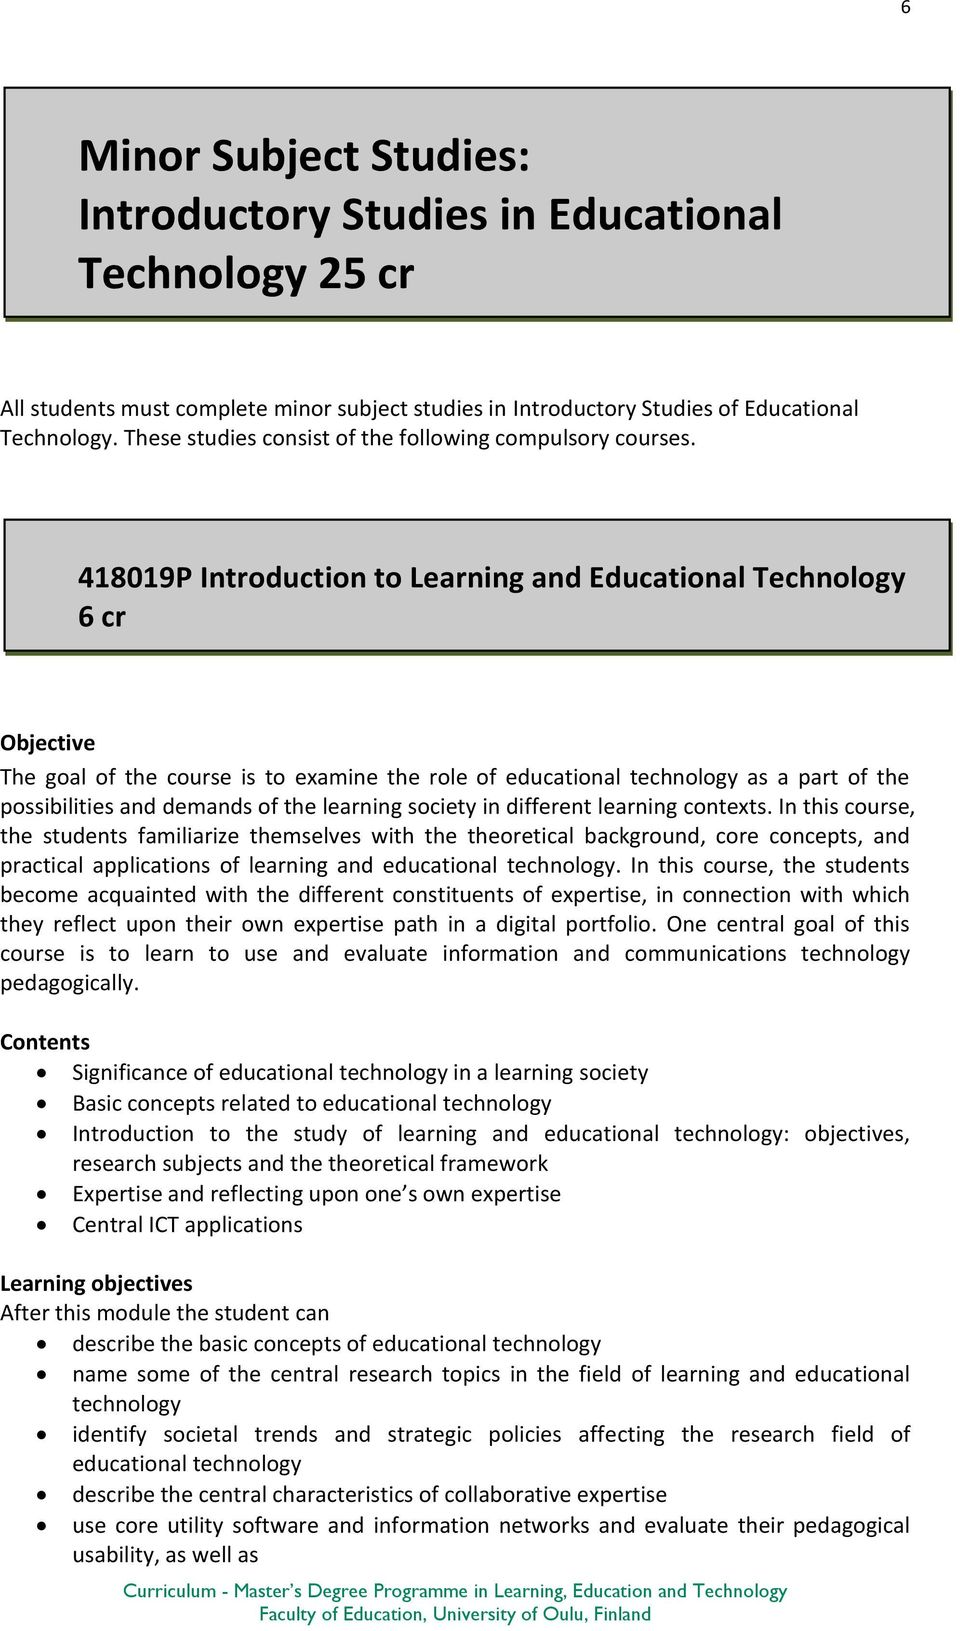 418019P Introduction to Learning and Educational Technology 6 cr The goal of the course is to examine the role of educational technology as a part of the possibilities and demands of the learning